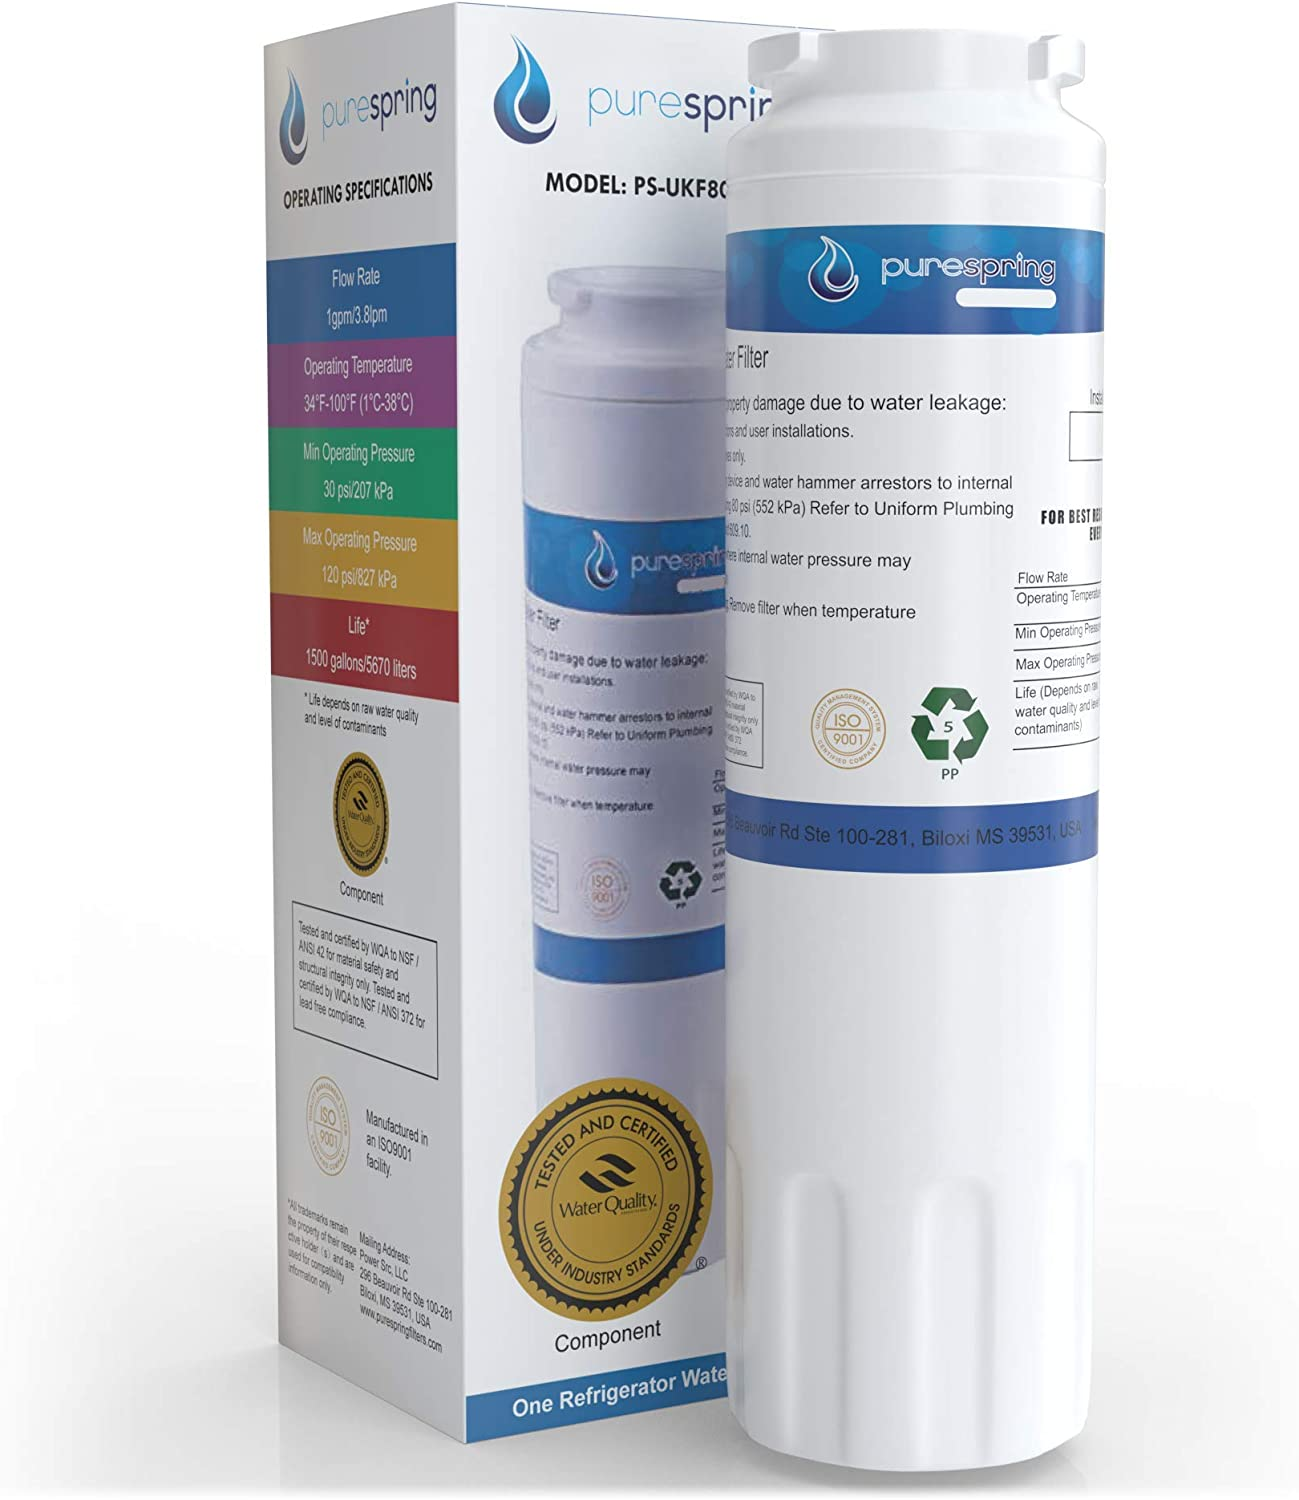 PureSpring NSF 42 Certified Refrigerator Water Filter, Compatible with Viking RWFFR, Maytag UKF8001, KitchenAid 67003523, 4396395, Kenmore 46-9006, PUR Filter 4 & Many Others (1 Pack)